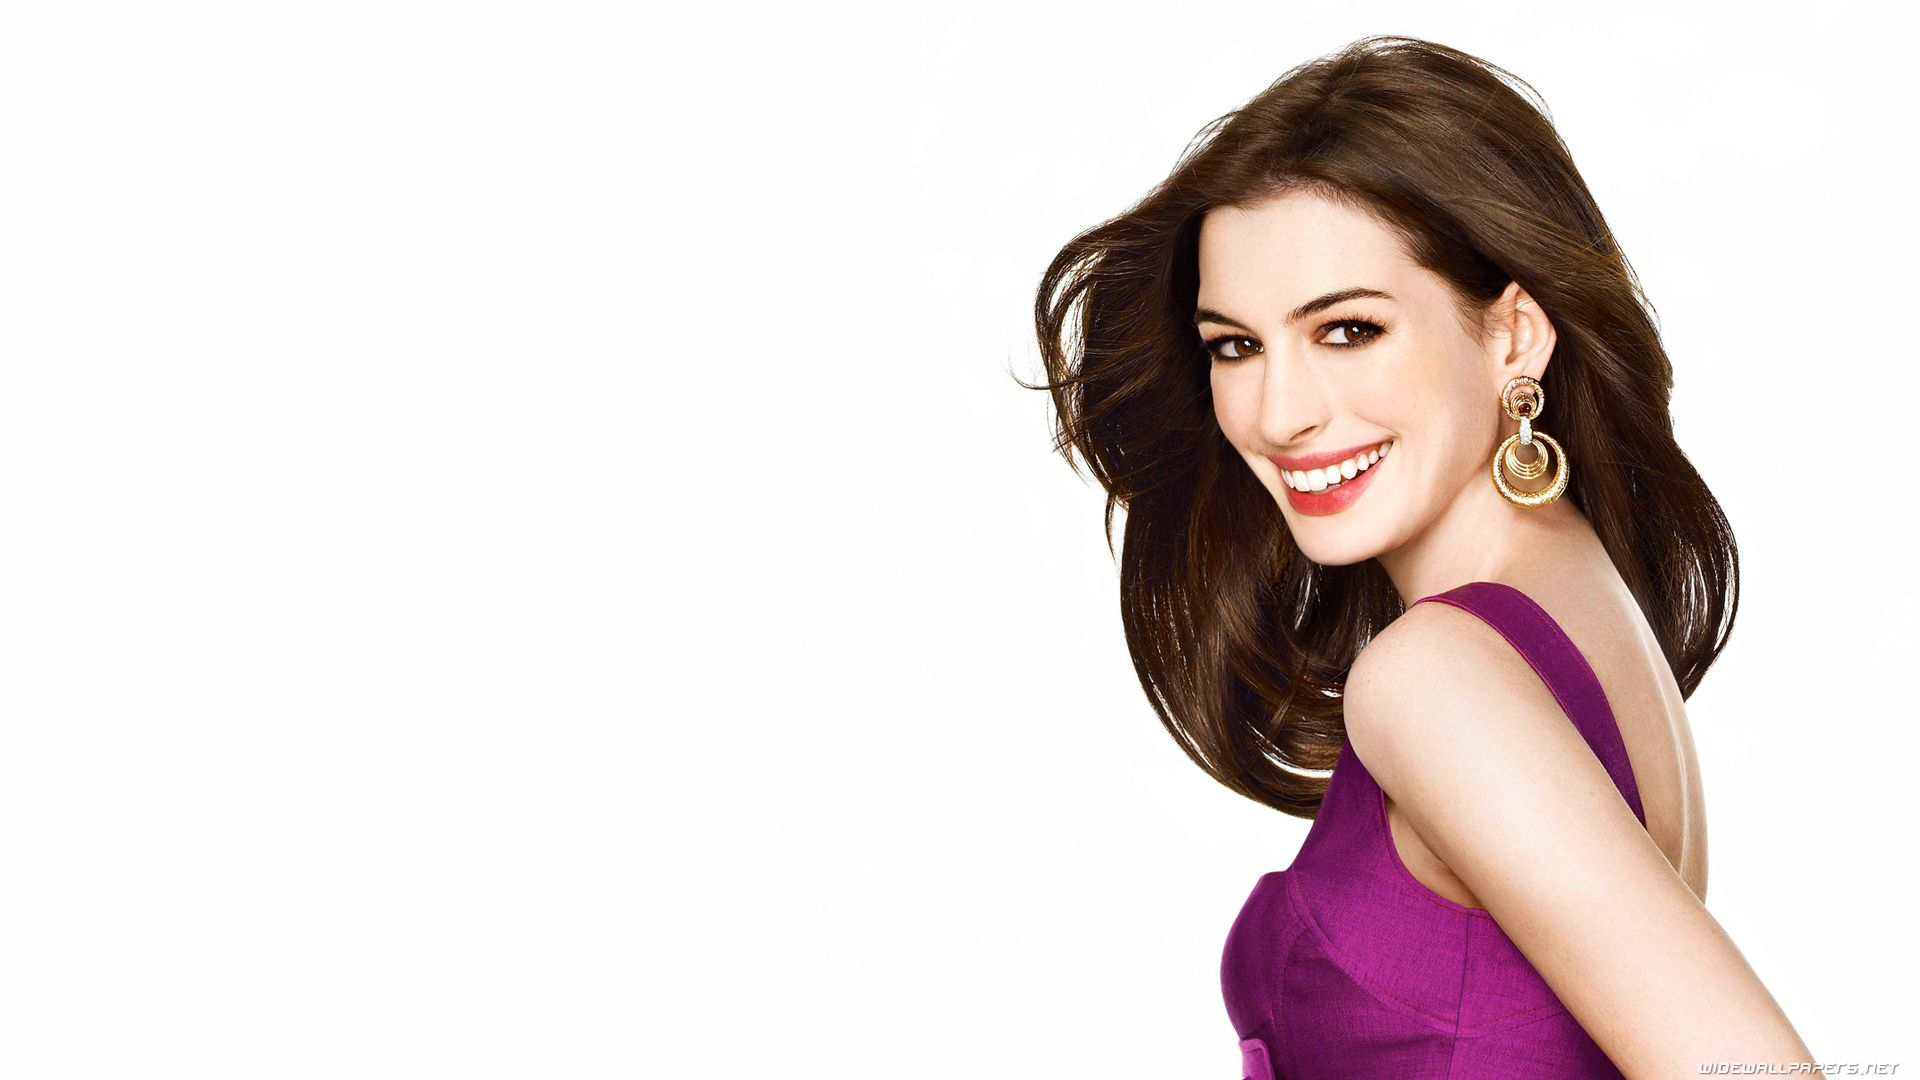 Anne Hathaway Wallpapers High Quality Download Free